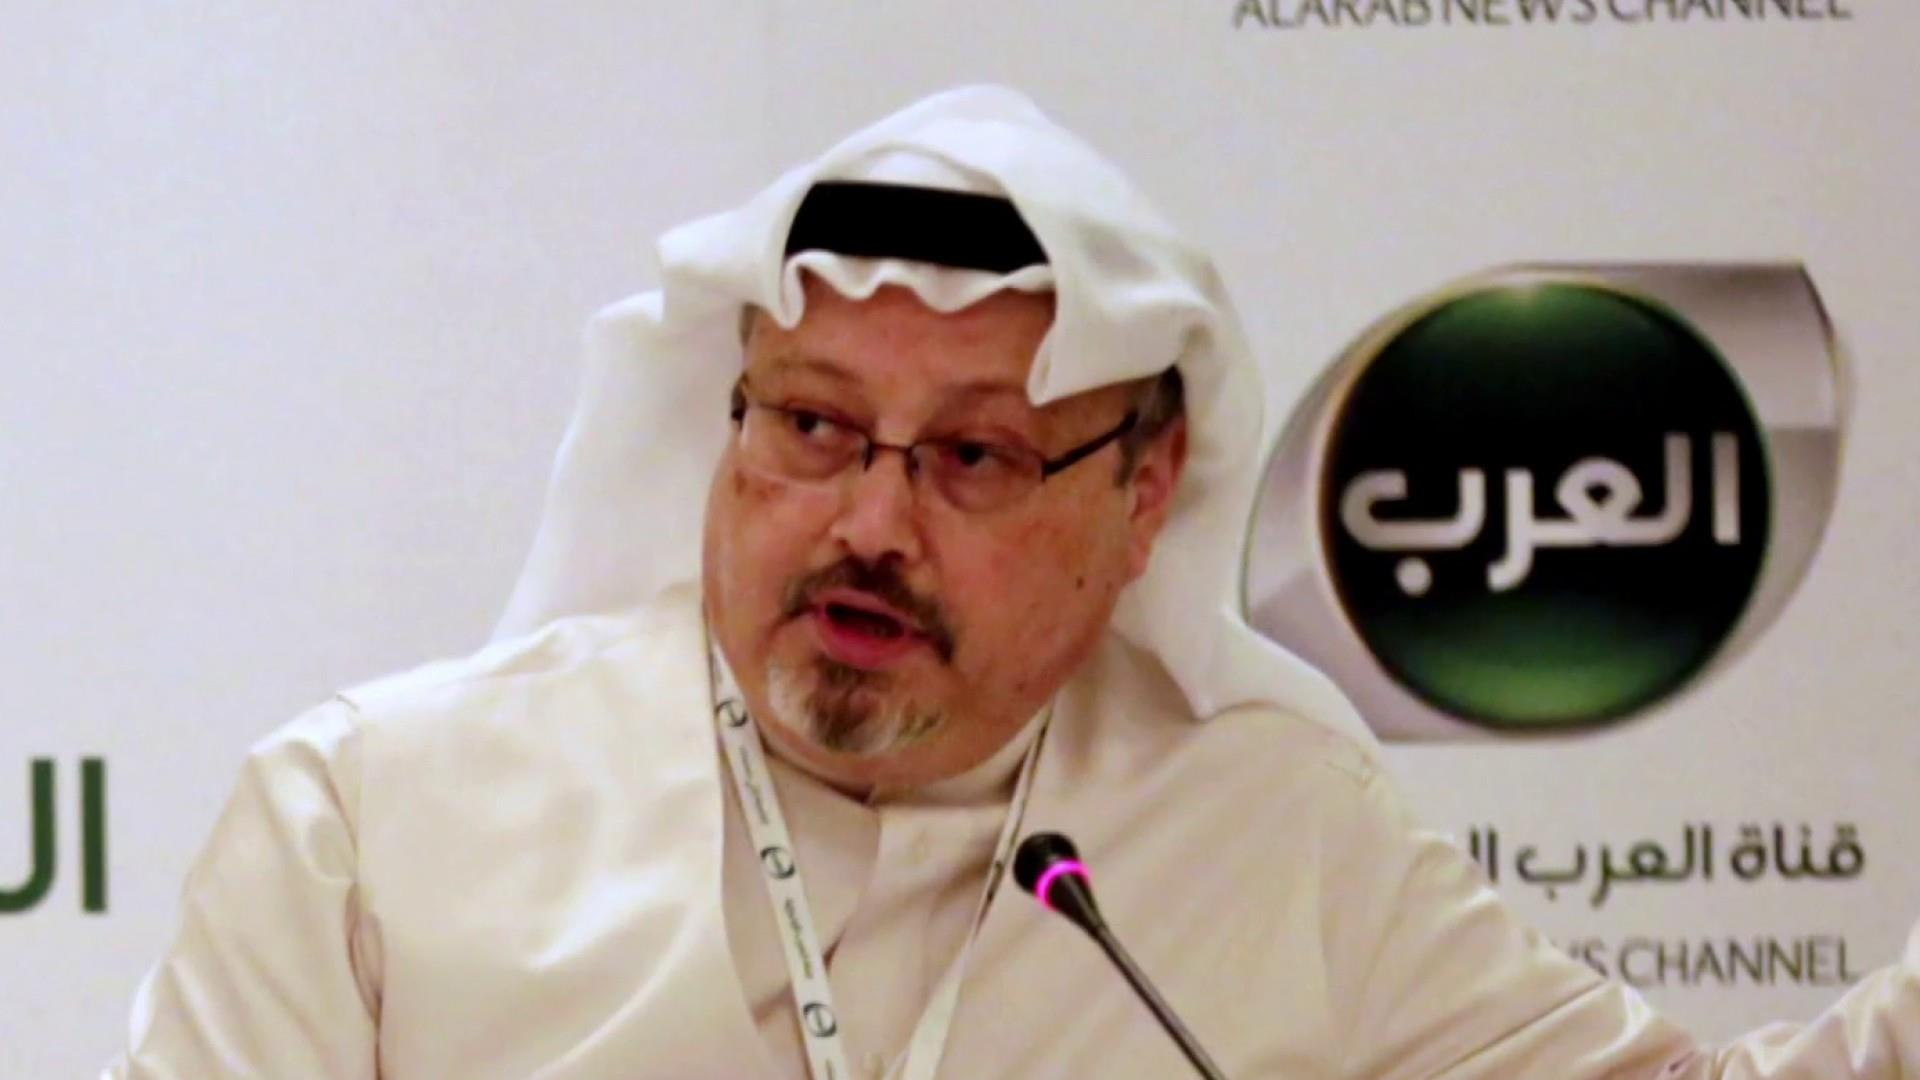 One More Thing: Turkish officials searching for justice for Jamal Khashoggi